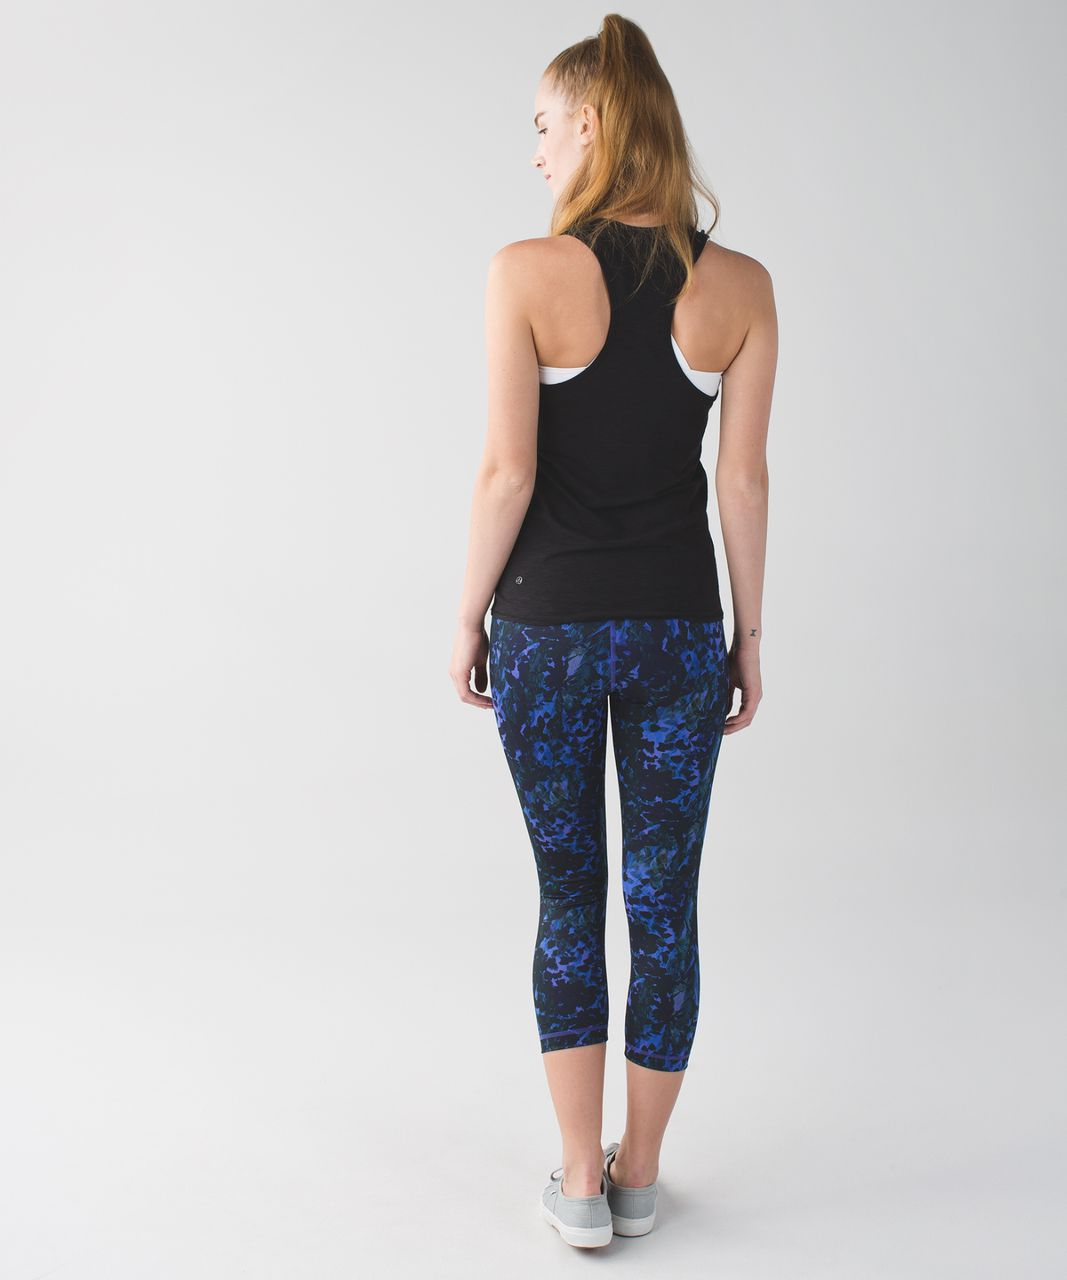 Lululemon Wunder Under Crop II *Full-On Luon - Floral Sport Backdrop Iris Flower Multi